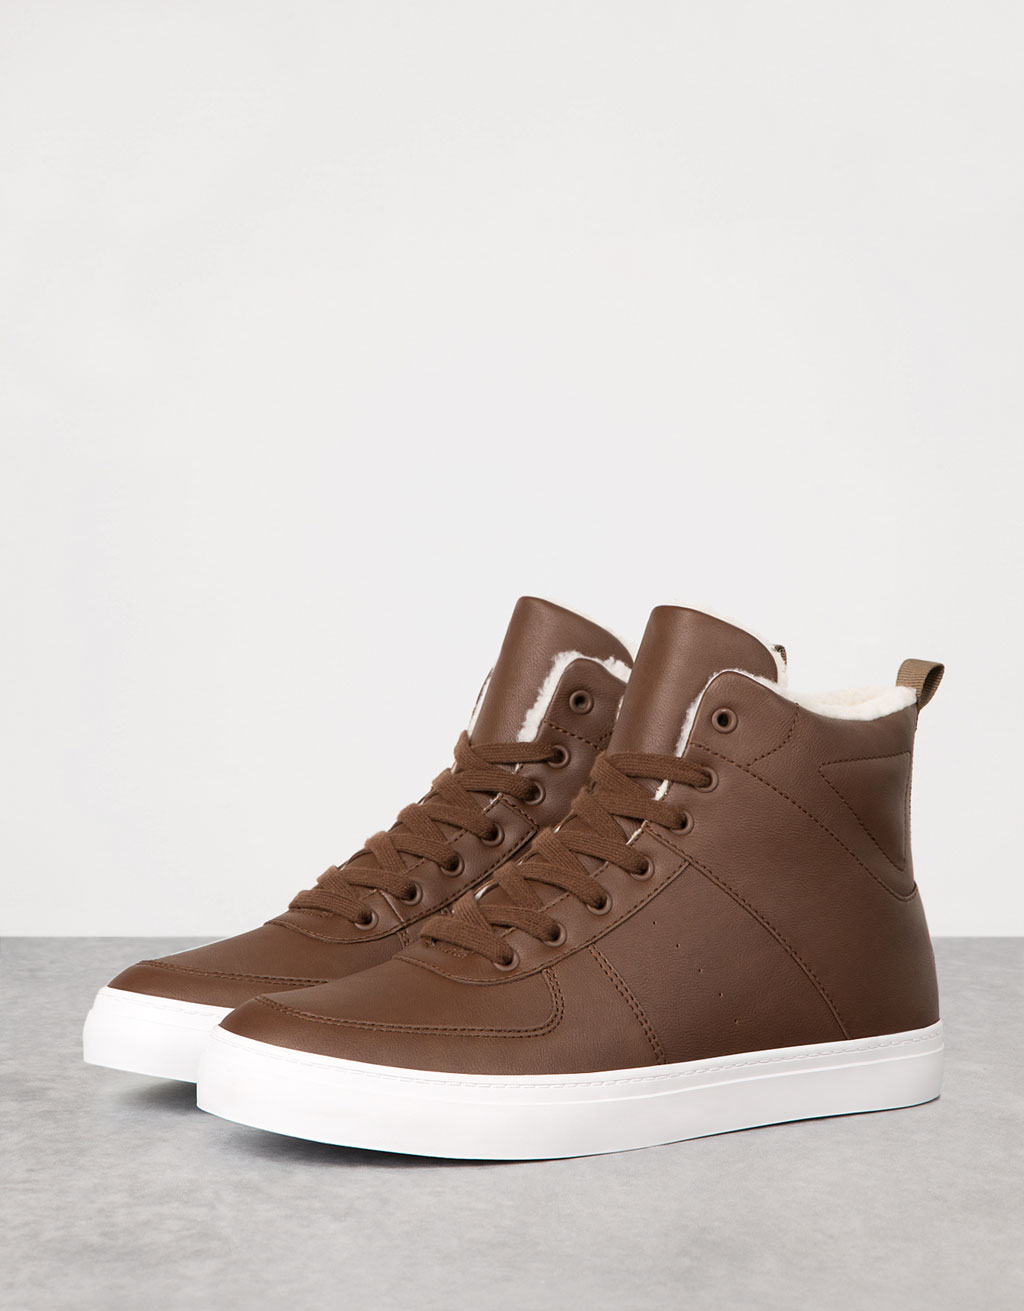 Men's lined high tops